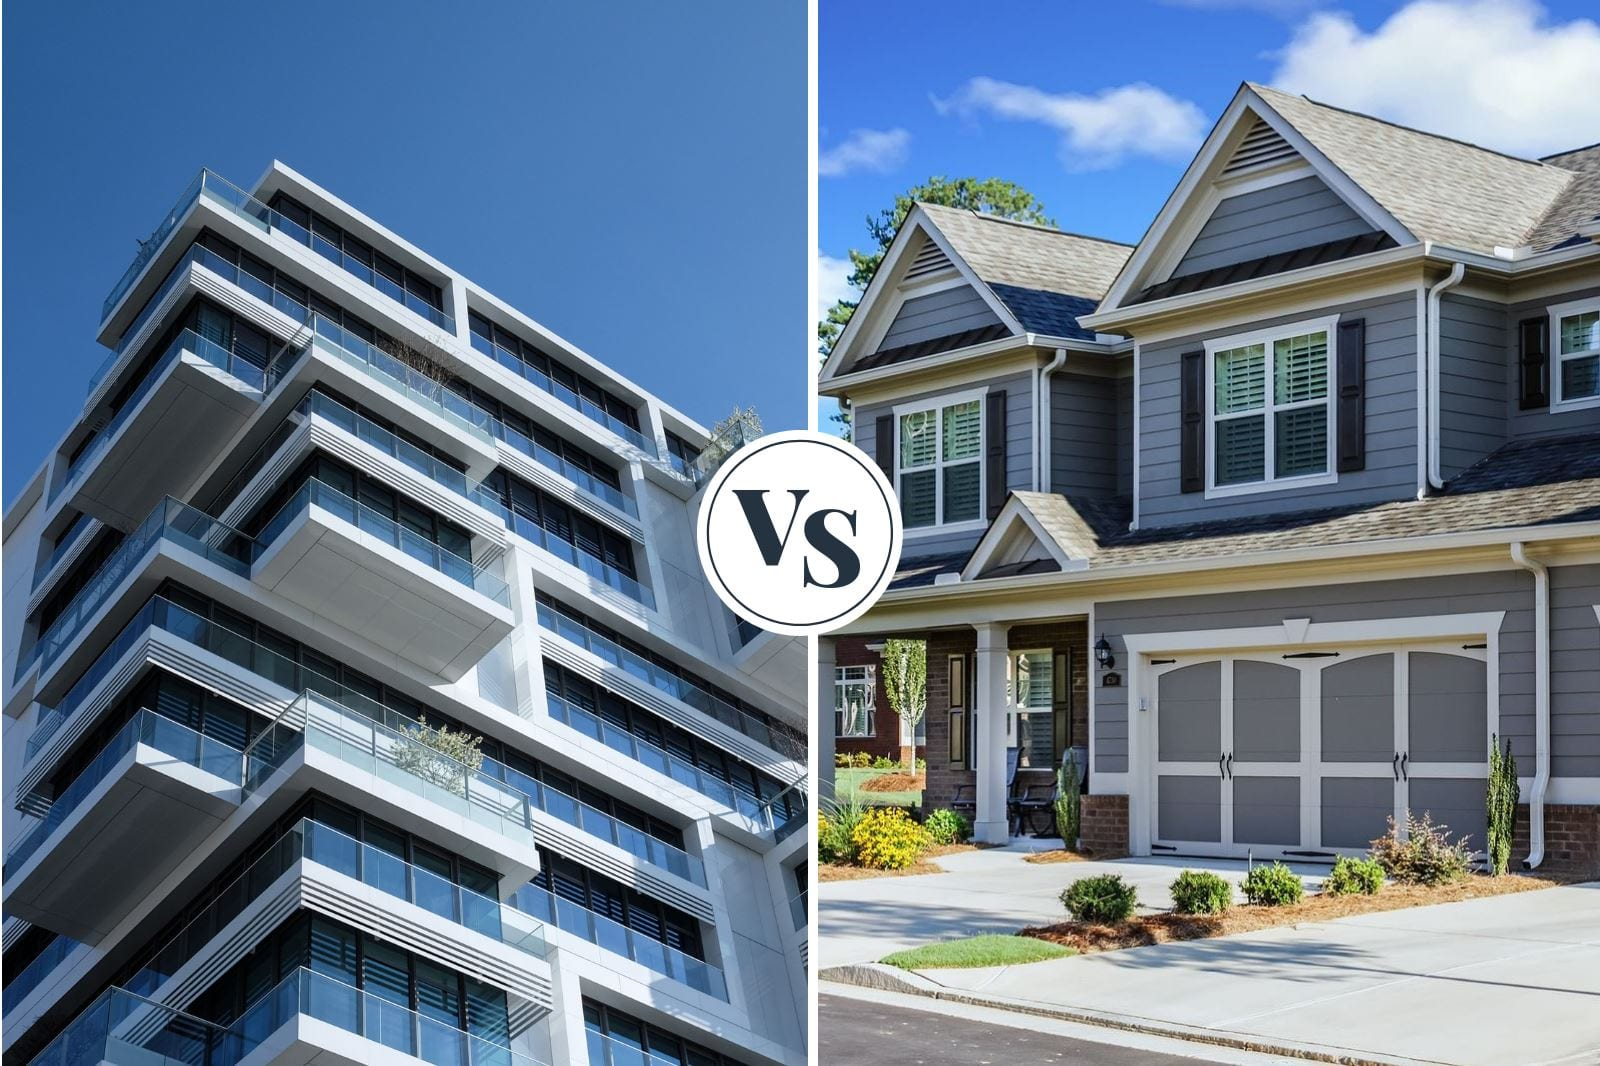 Condo vs house investment property mortgage rates owner occupied vs investment